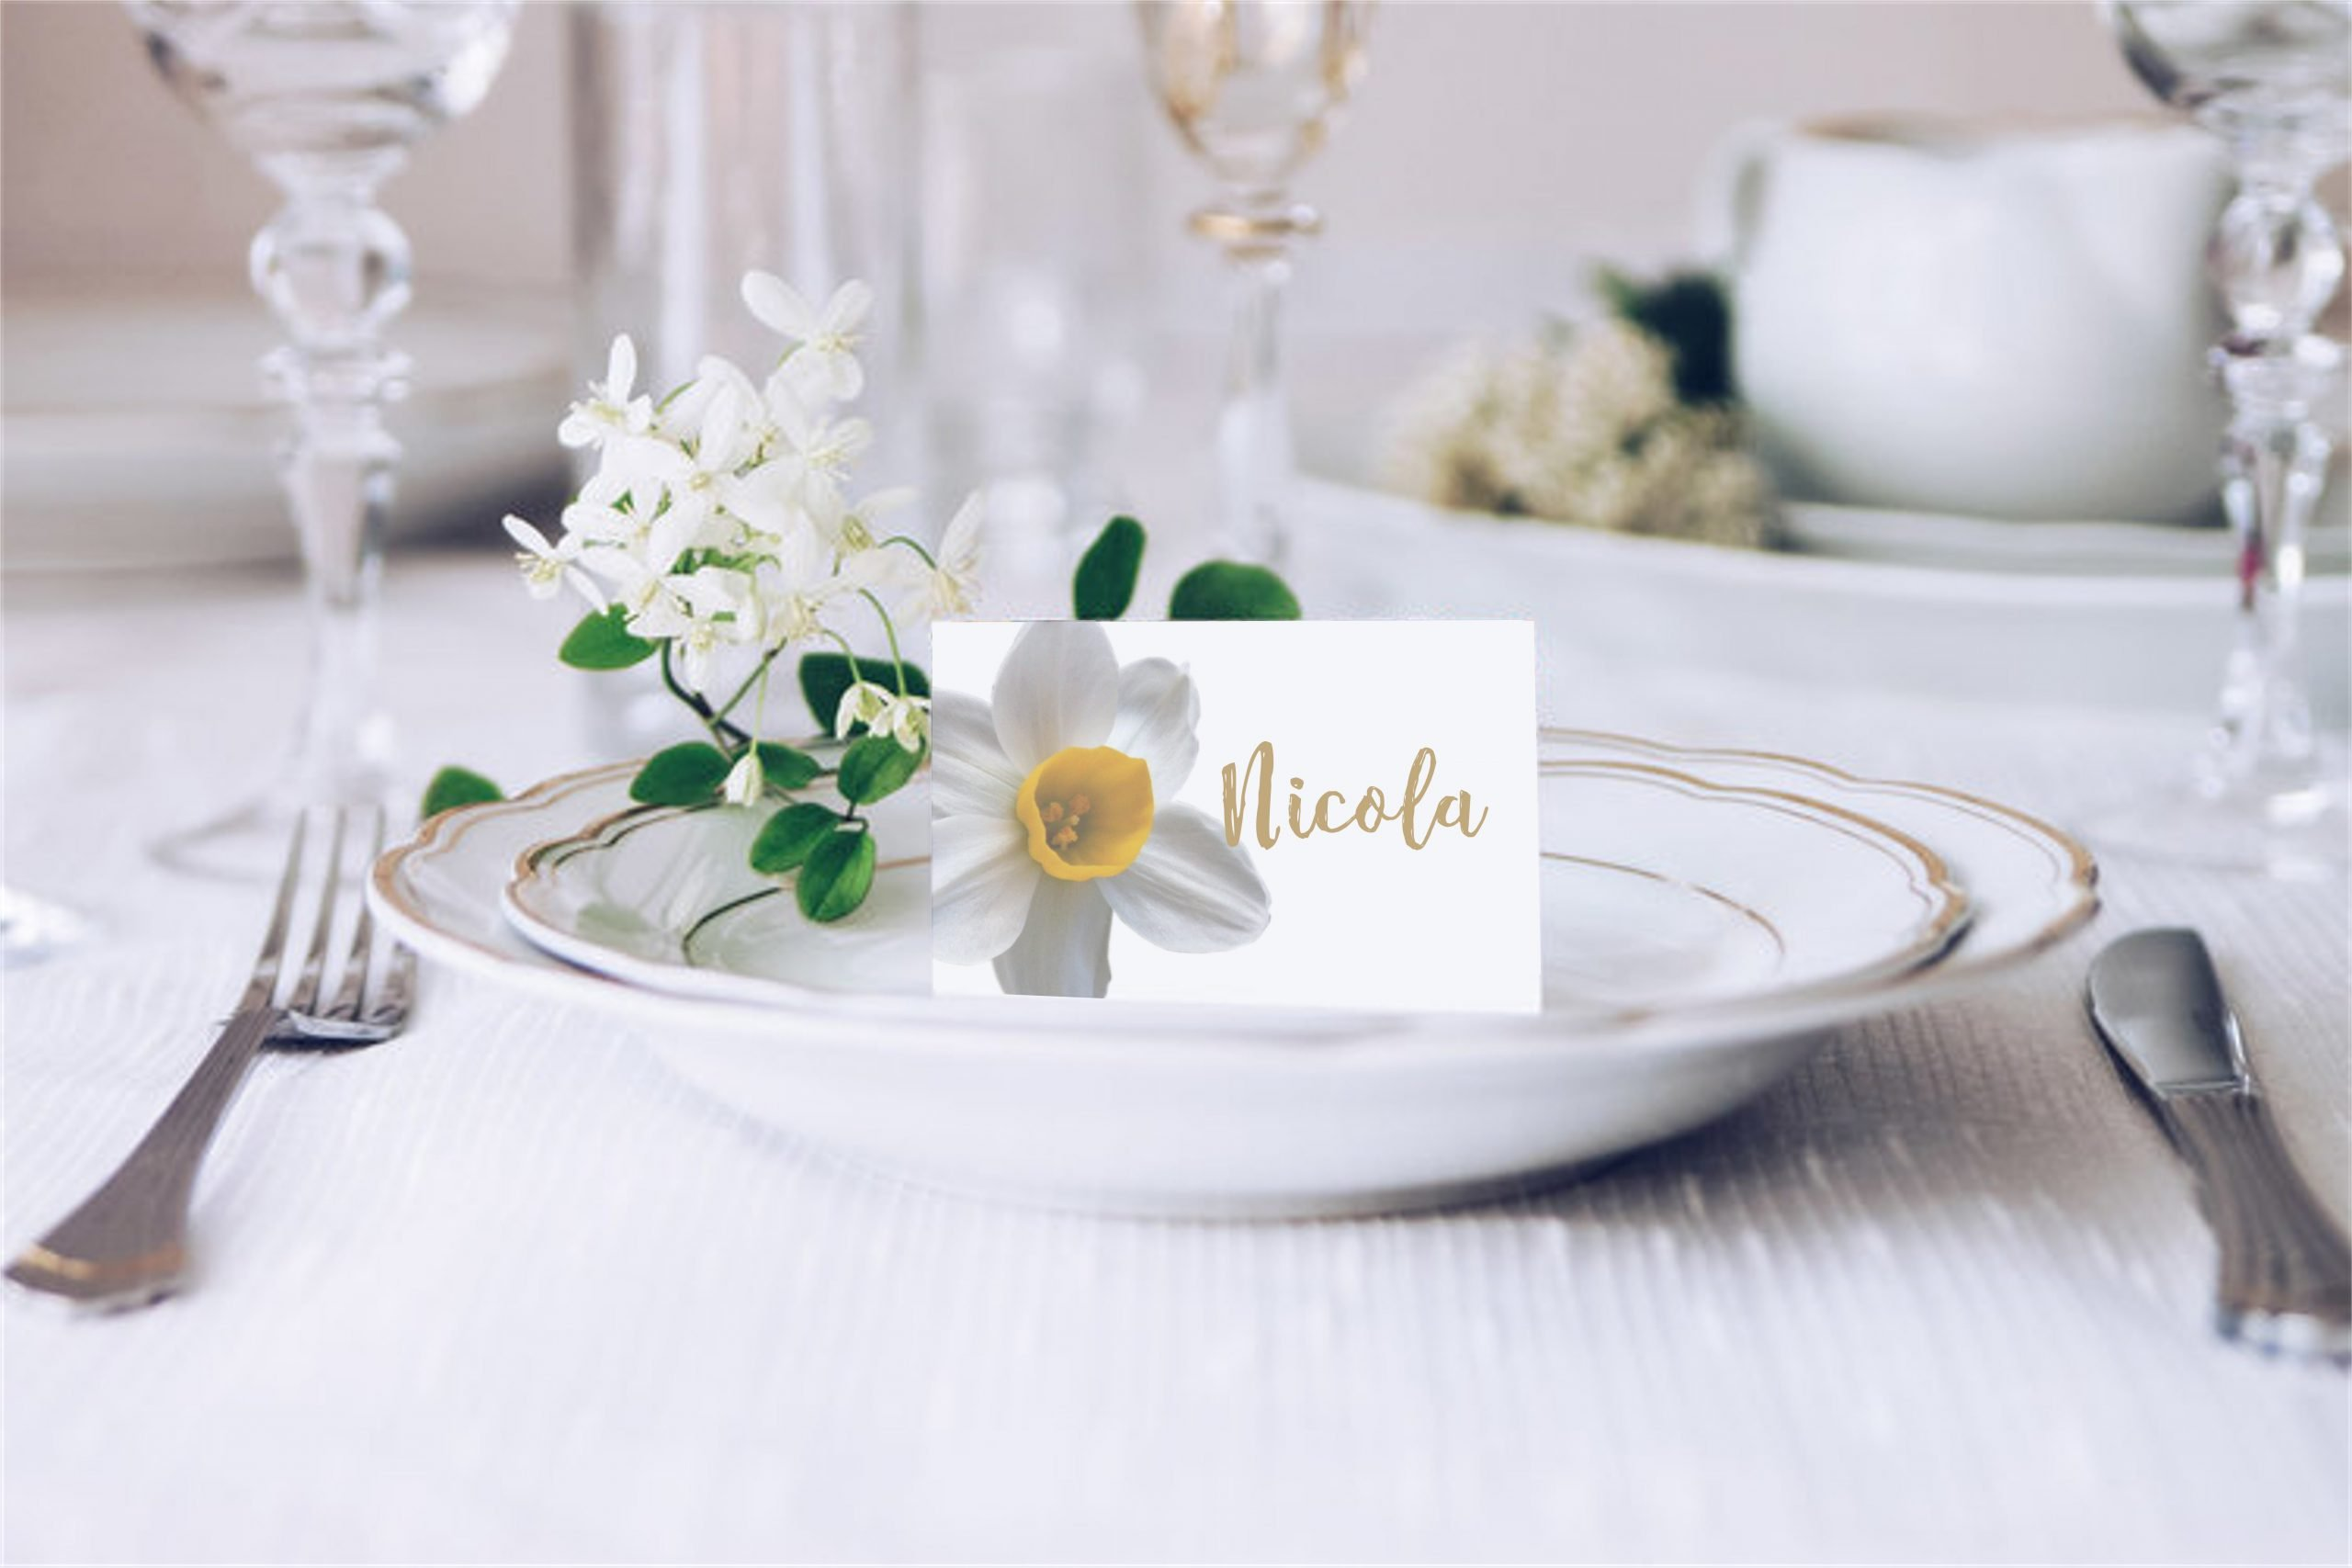 White Daffodil Welsh Flower Wedding Place Card